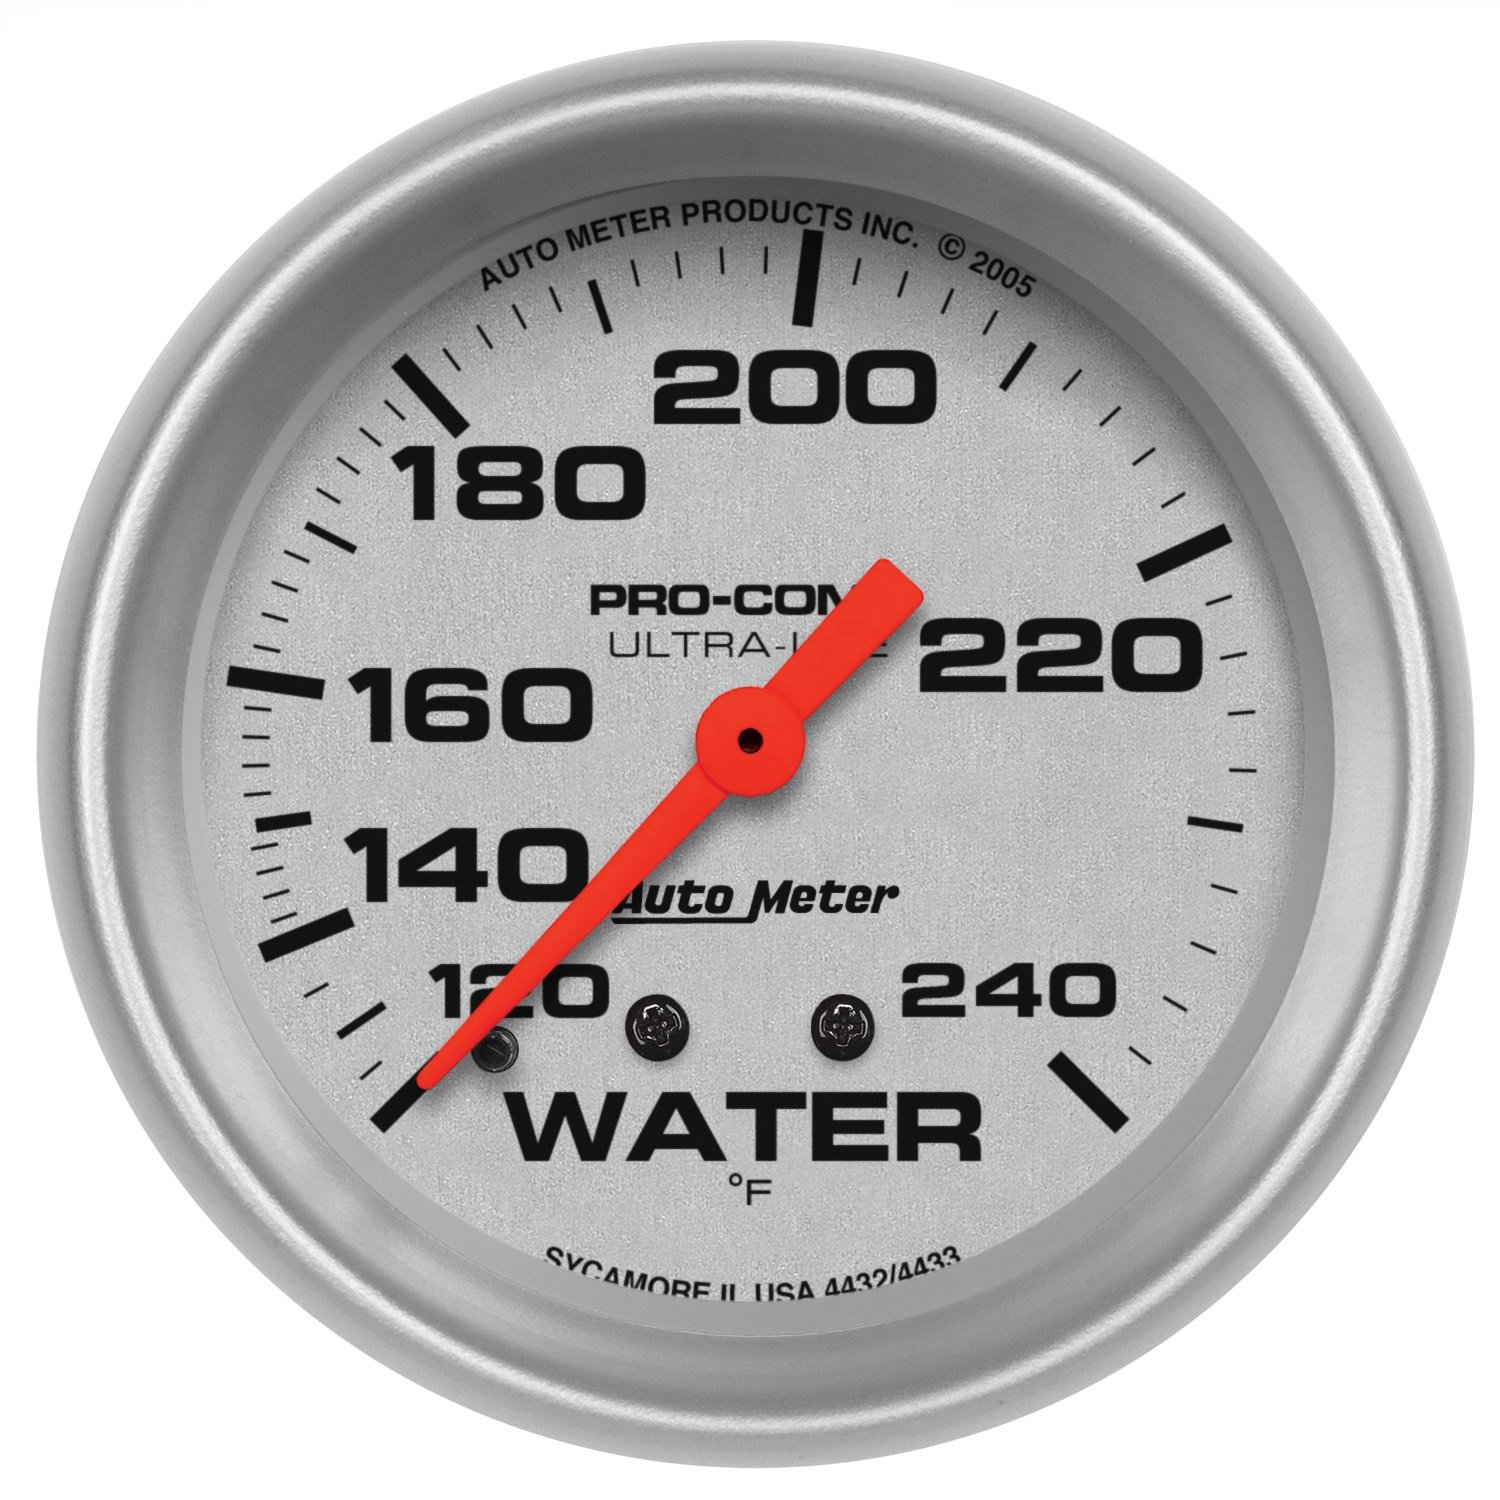 Auto Meter 4432 Ultra-Lite Mechanical Water Temperature Gauge by AUTO METER